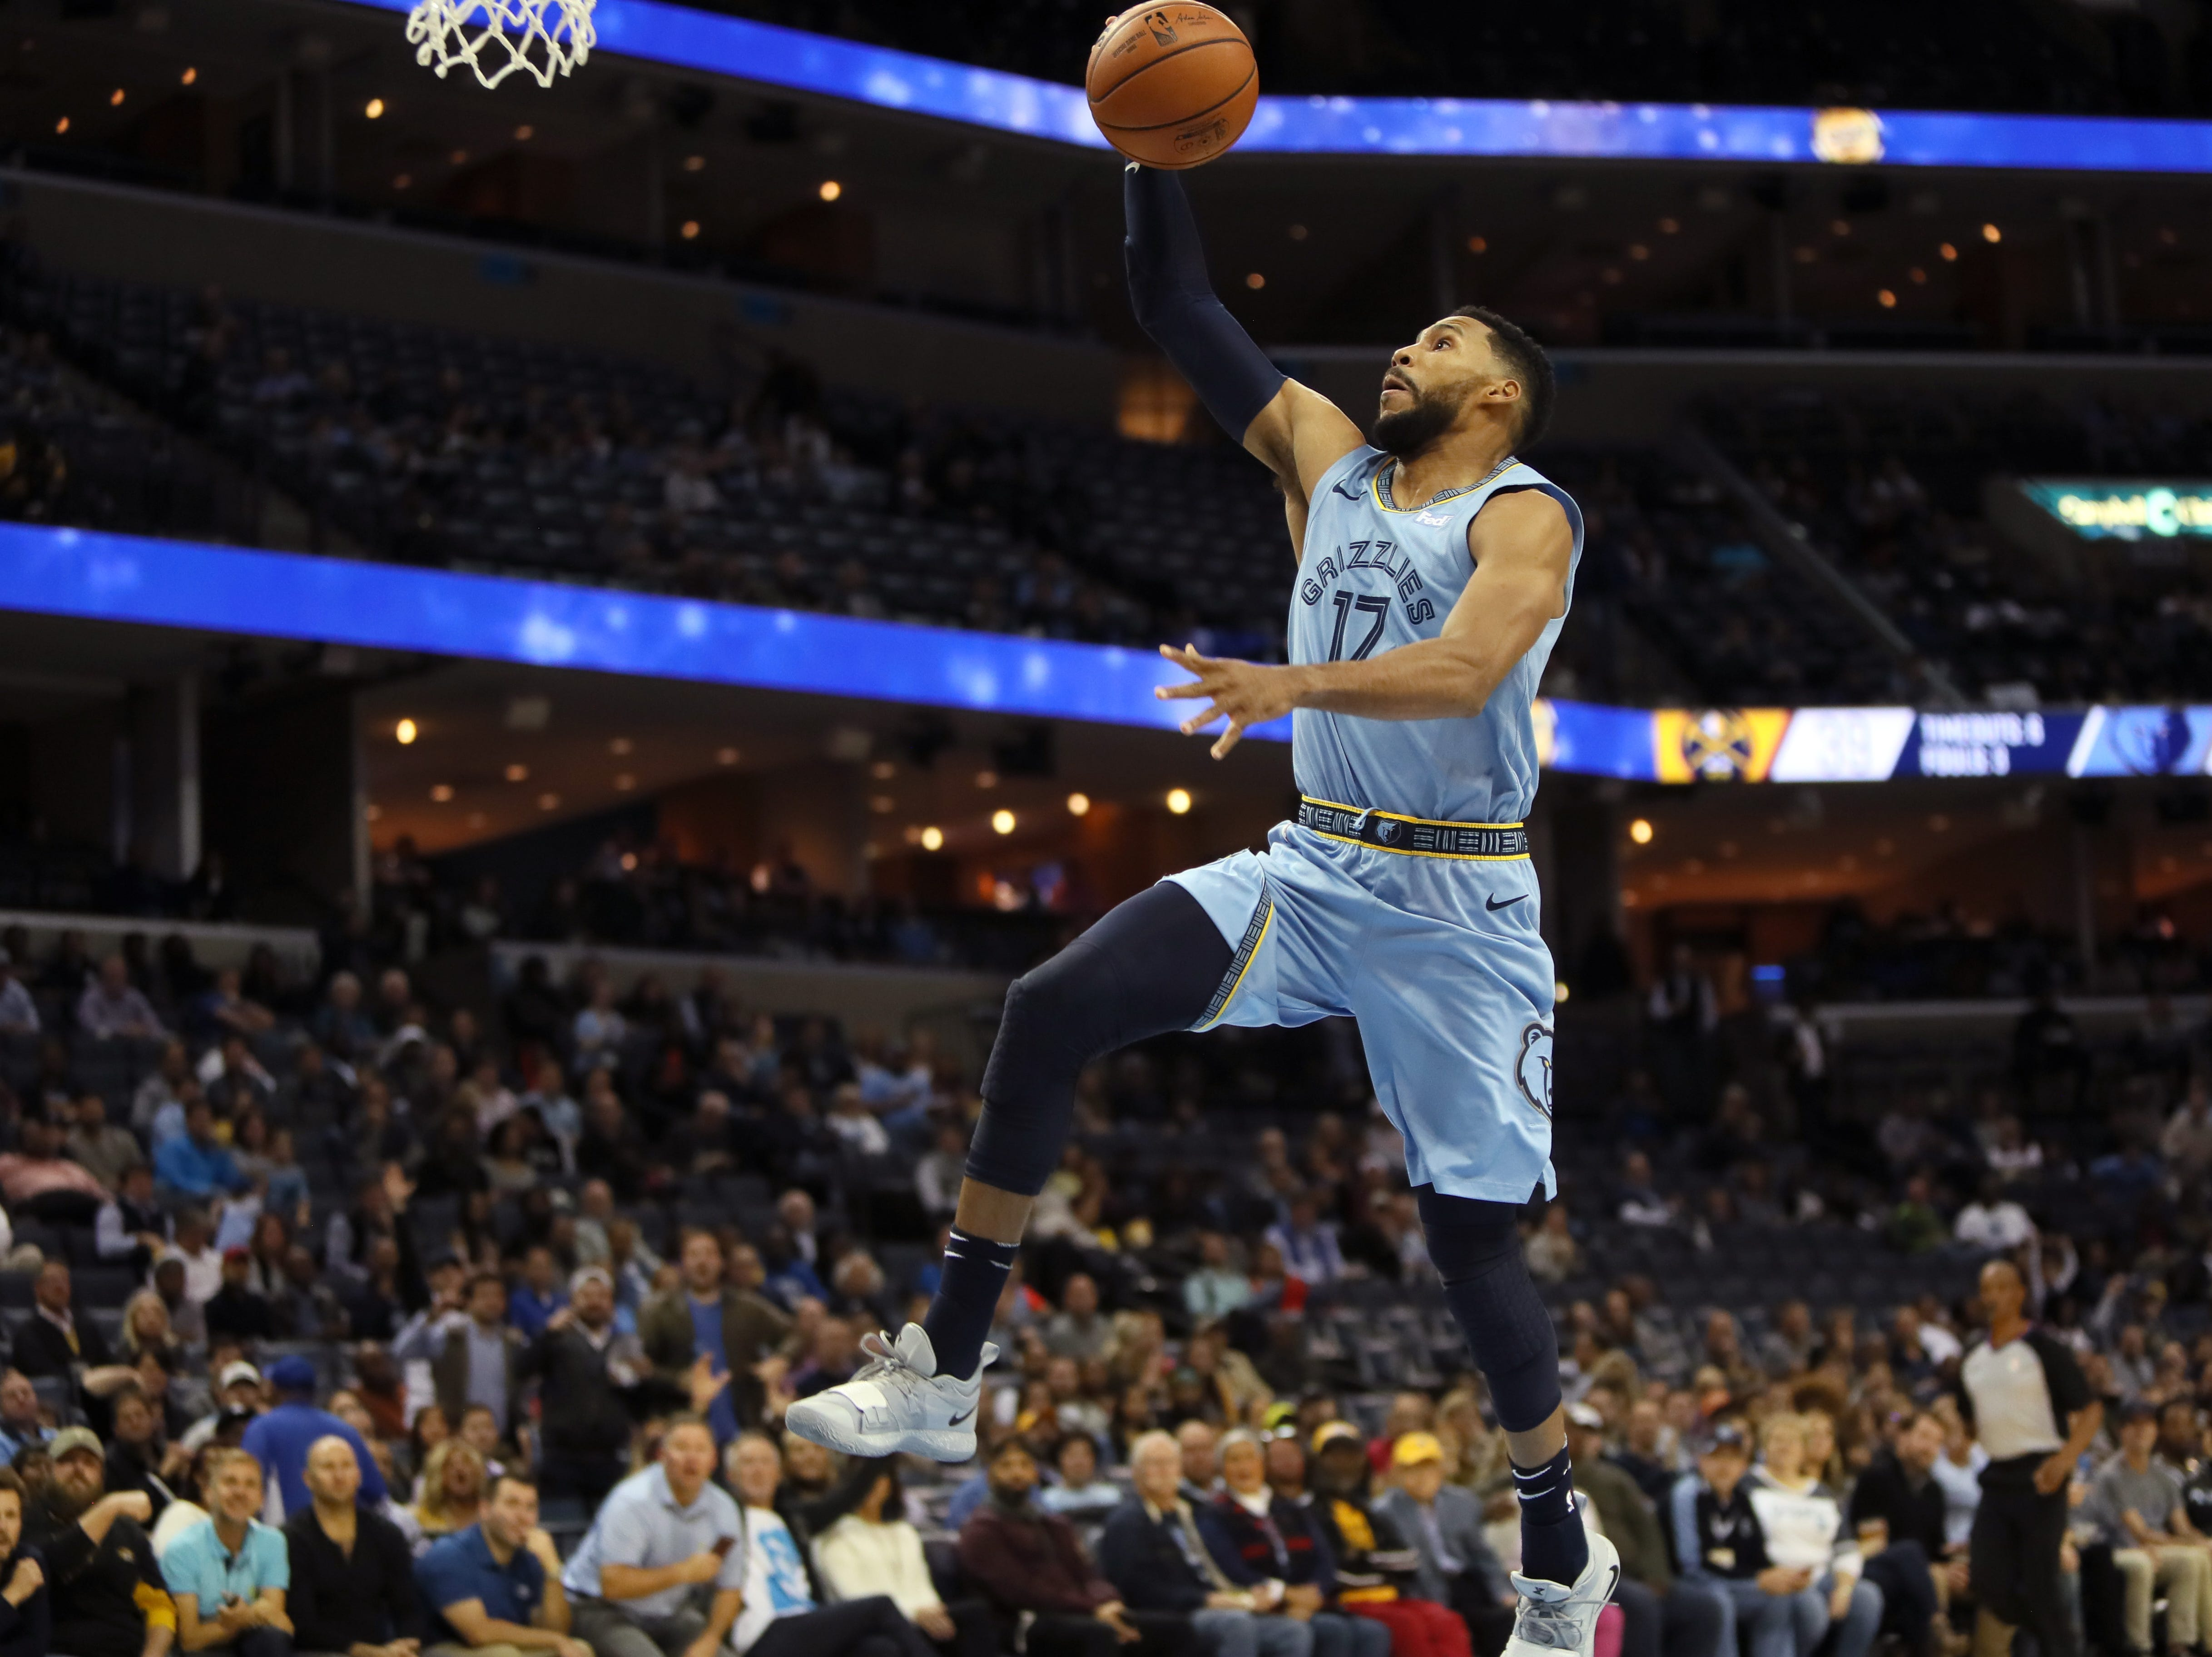 Memphis Grizzlies guard lays the ball up against Denver Nuggets guard during their game at the FedExForum on Wednesday, November 7, 2018.